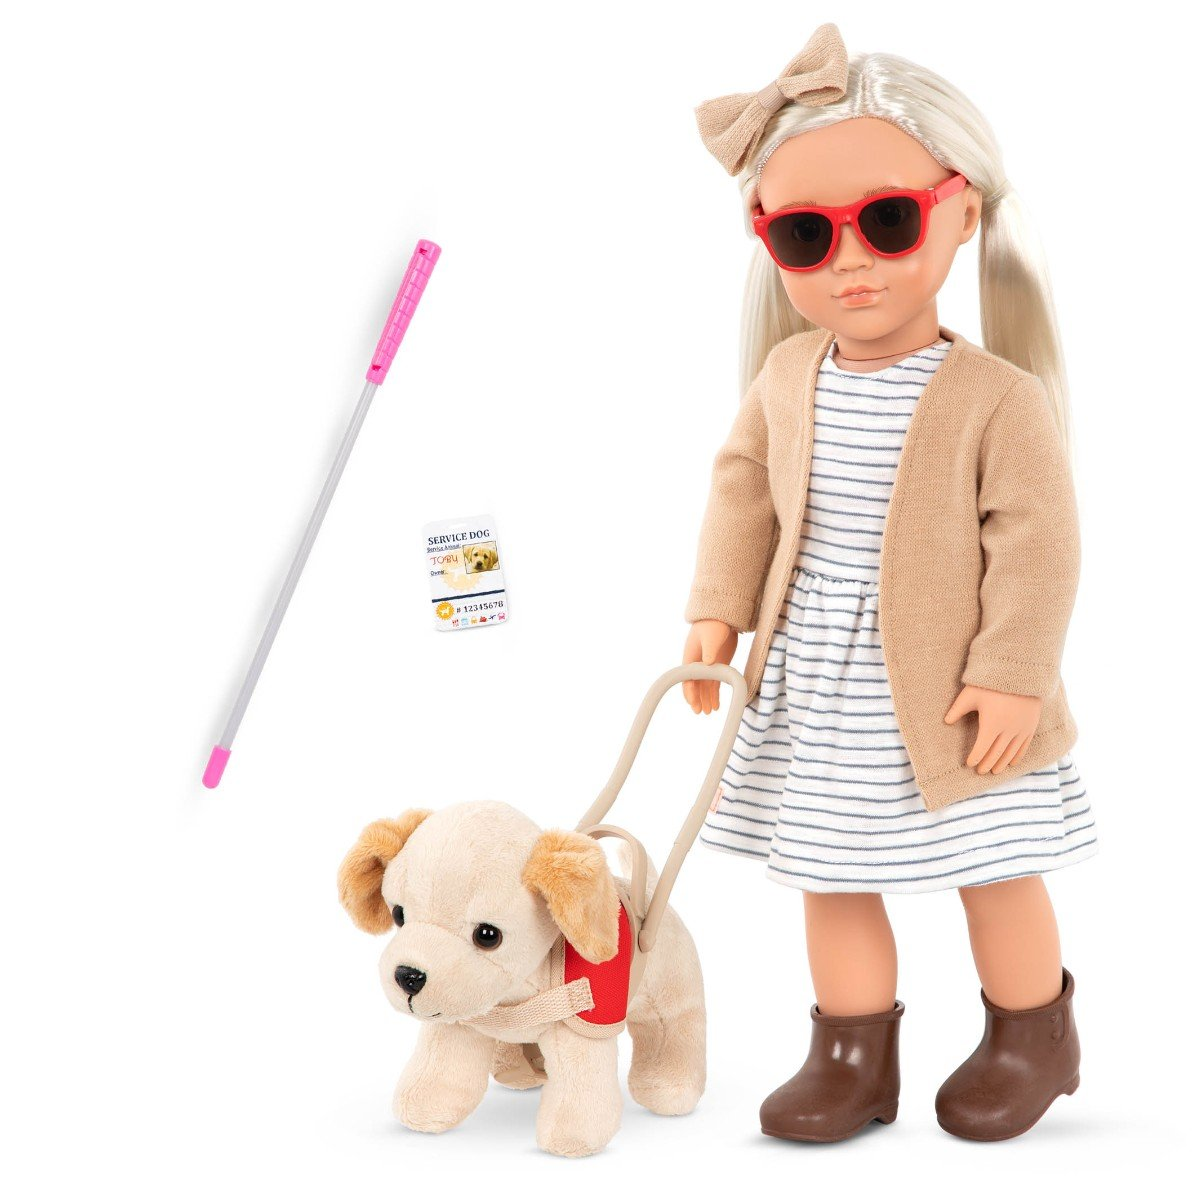 Our Generation - Marlow Doll With Pet Guide Dog (731321)